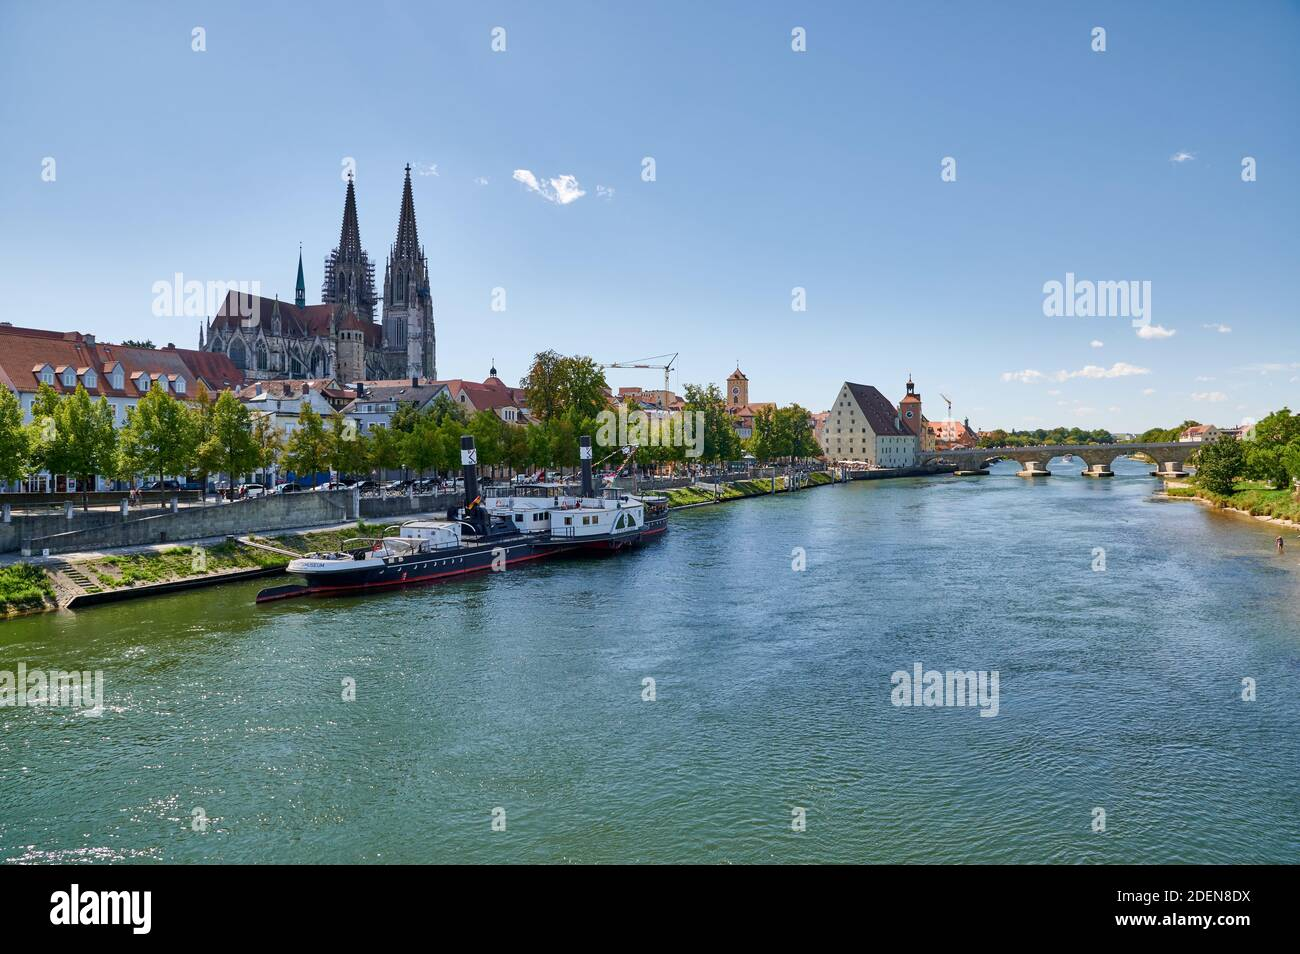 The St. Peter  Cathedral with the RUTHOF / ÉRSEKCSANÁD Ship Museum on River Danube in the foreground, Regensburg , Bavaria, Germany Stock Photo